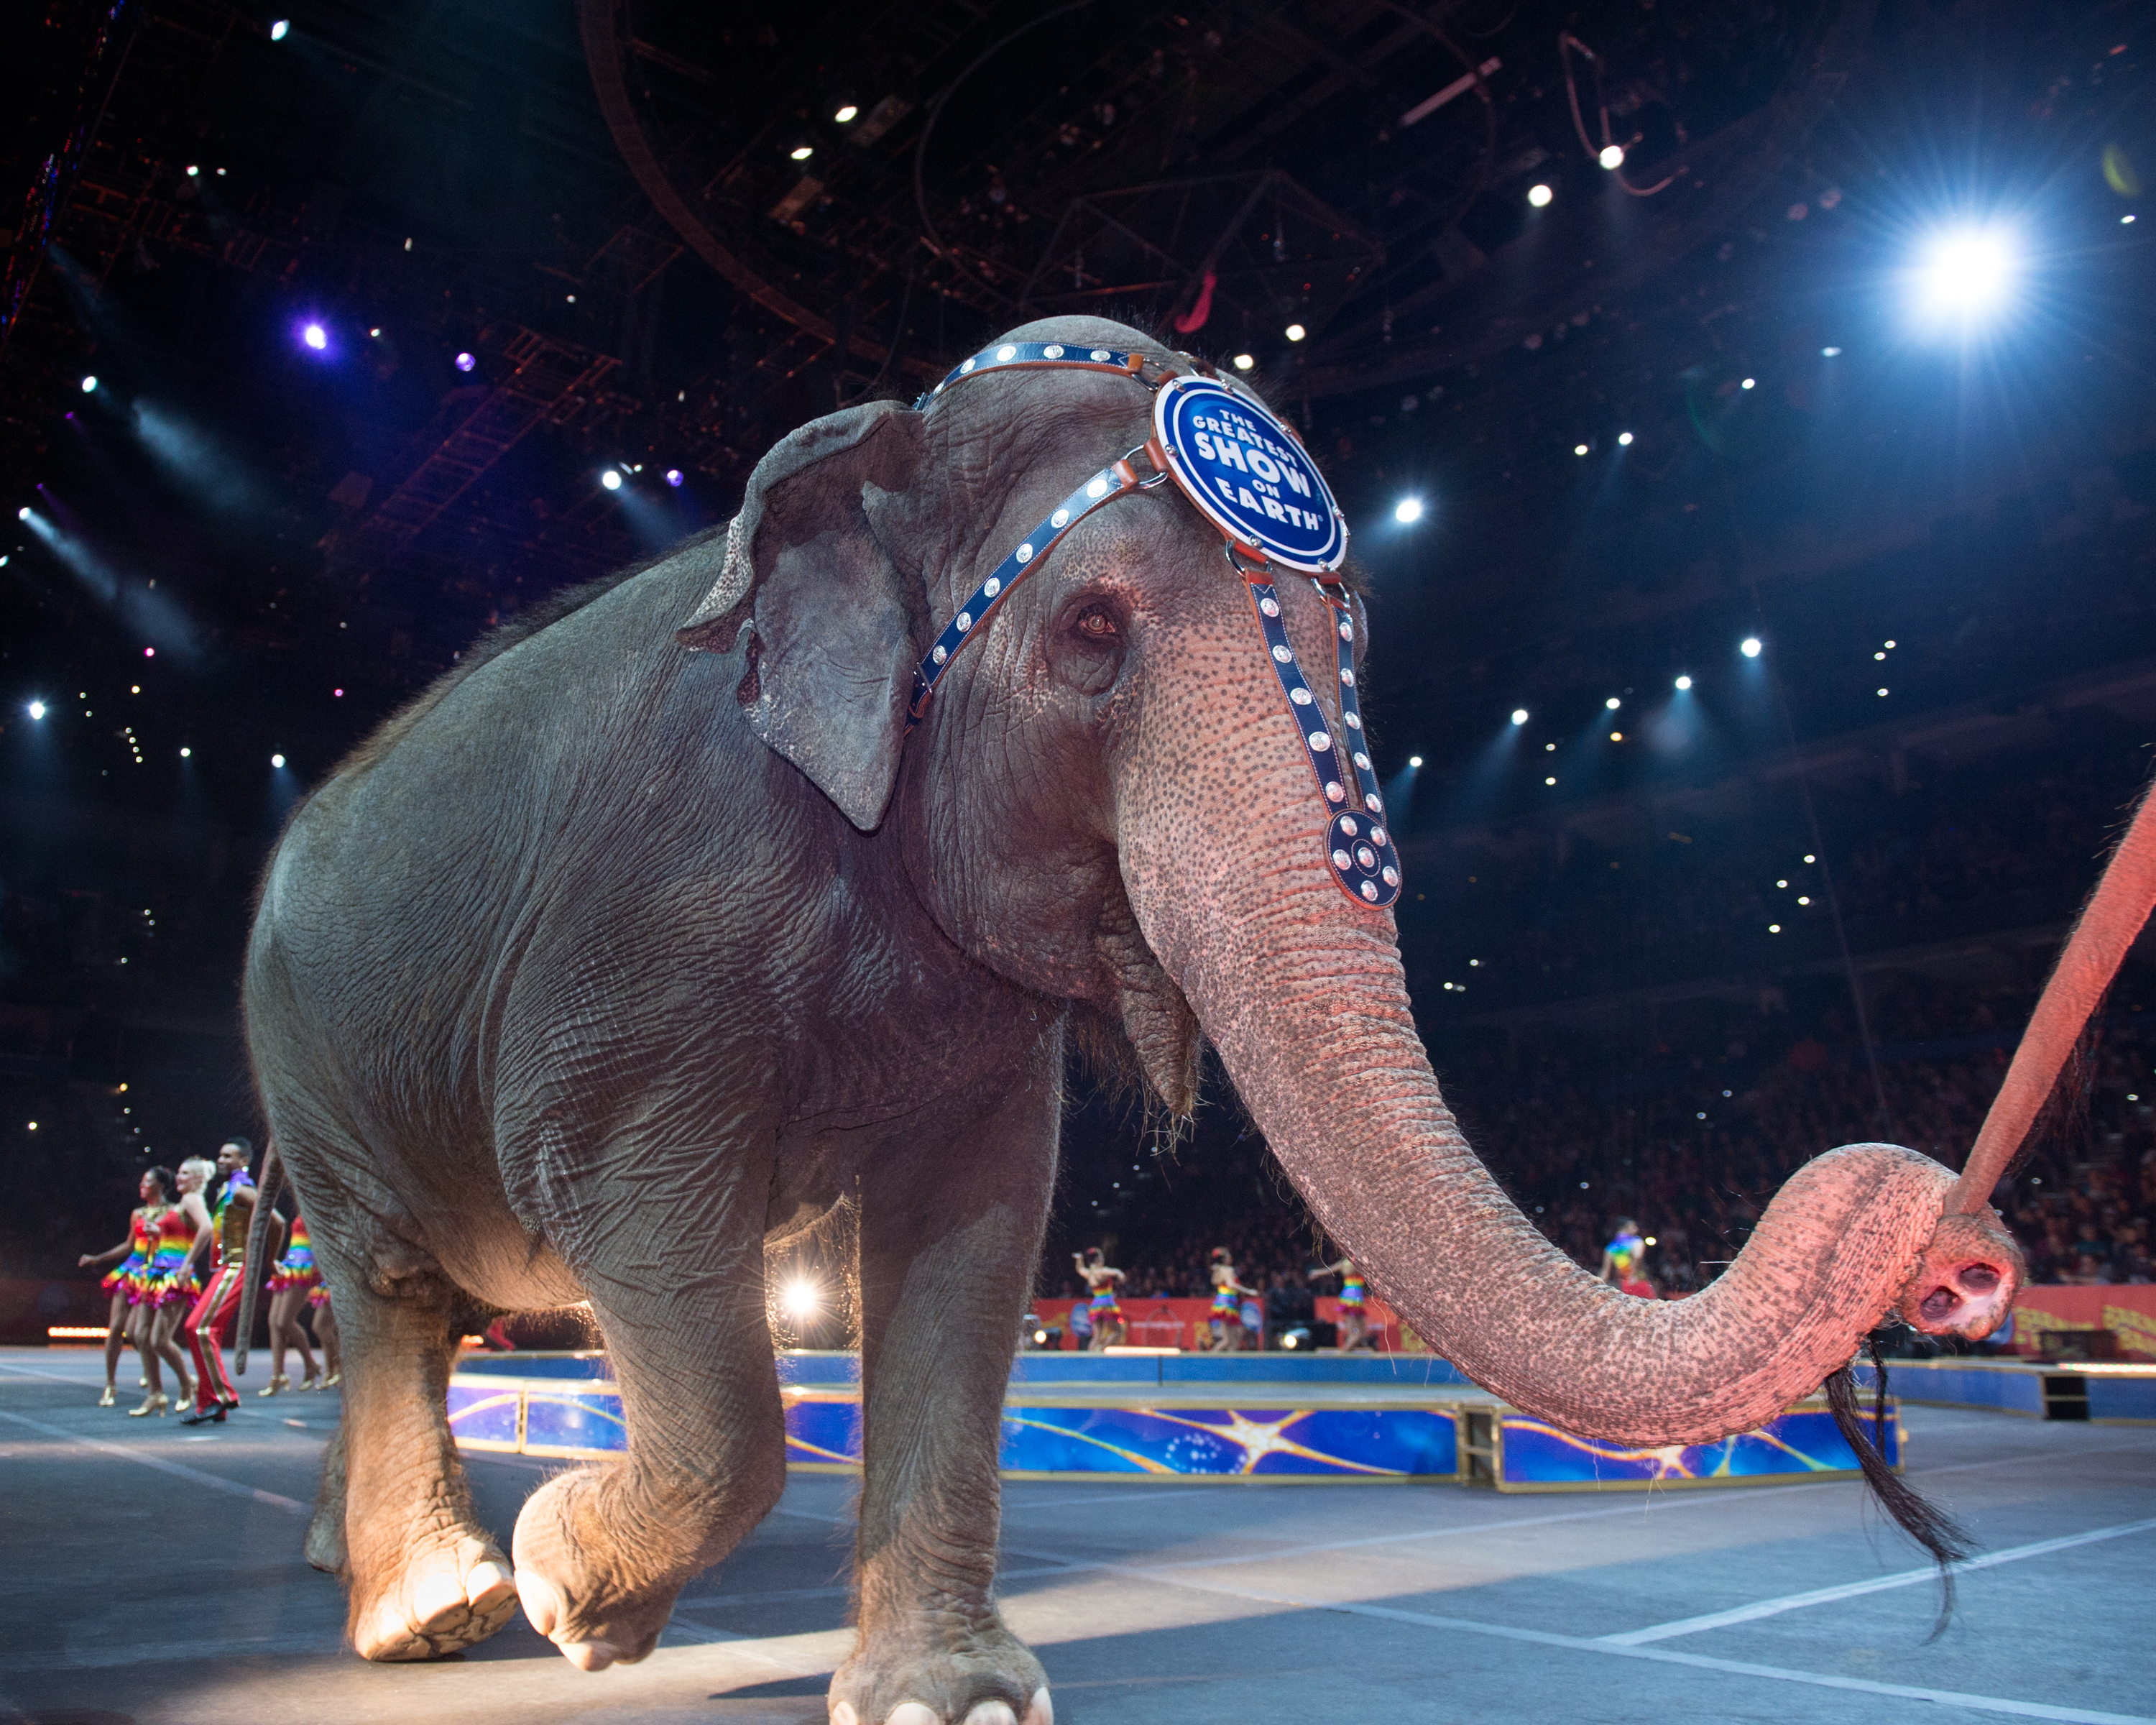 Families that want to see Ringling Bros. amazing elephants perform, like Karen (pictured),  one last time have an opportunity to do so prior to May 2016, before all elephants will be located at the Ringling Bros. Center for Elephant Conservation in Central Florida. (Photo: Feld Entertainment)